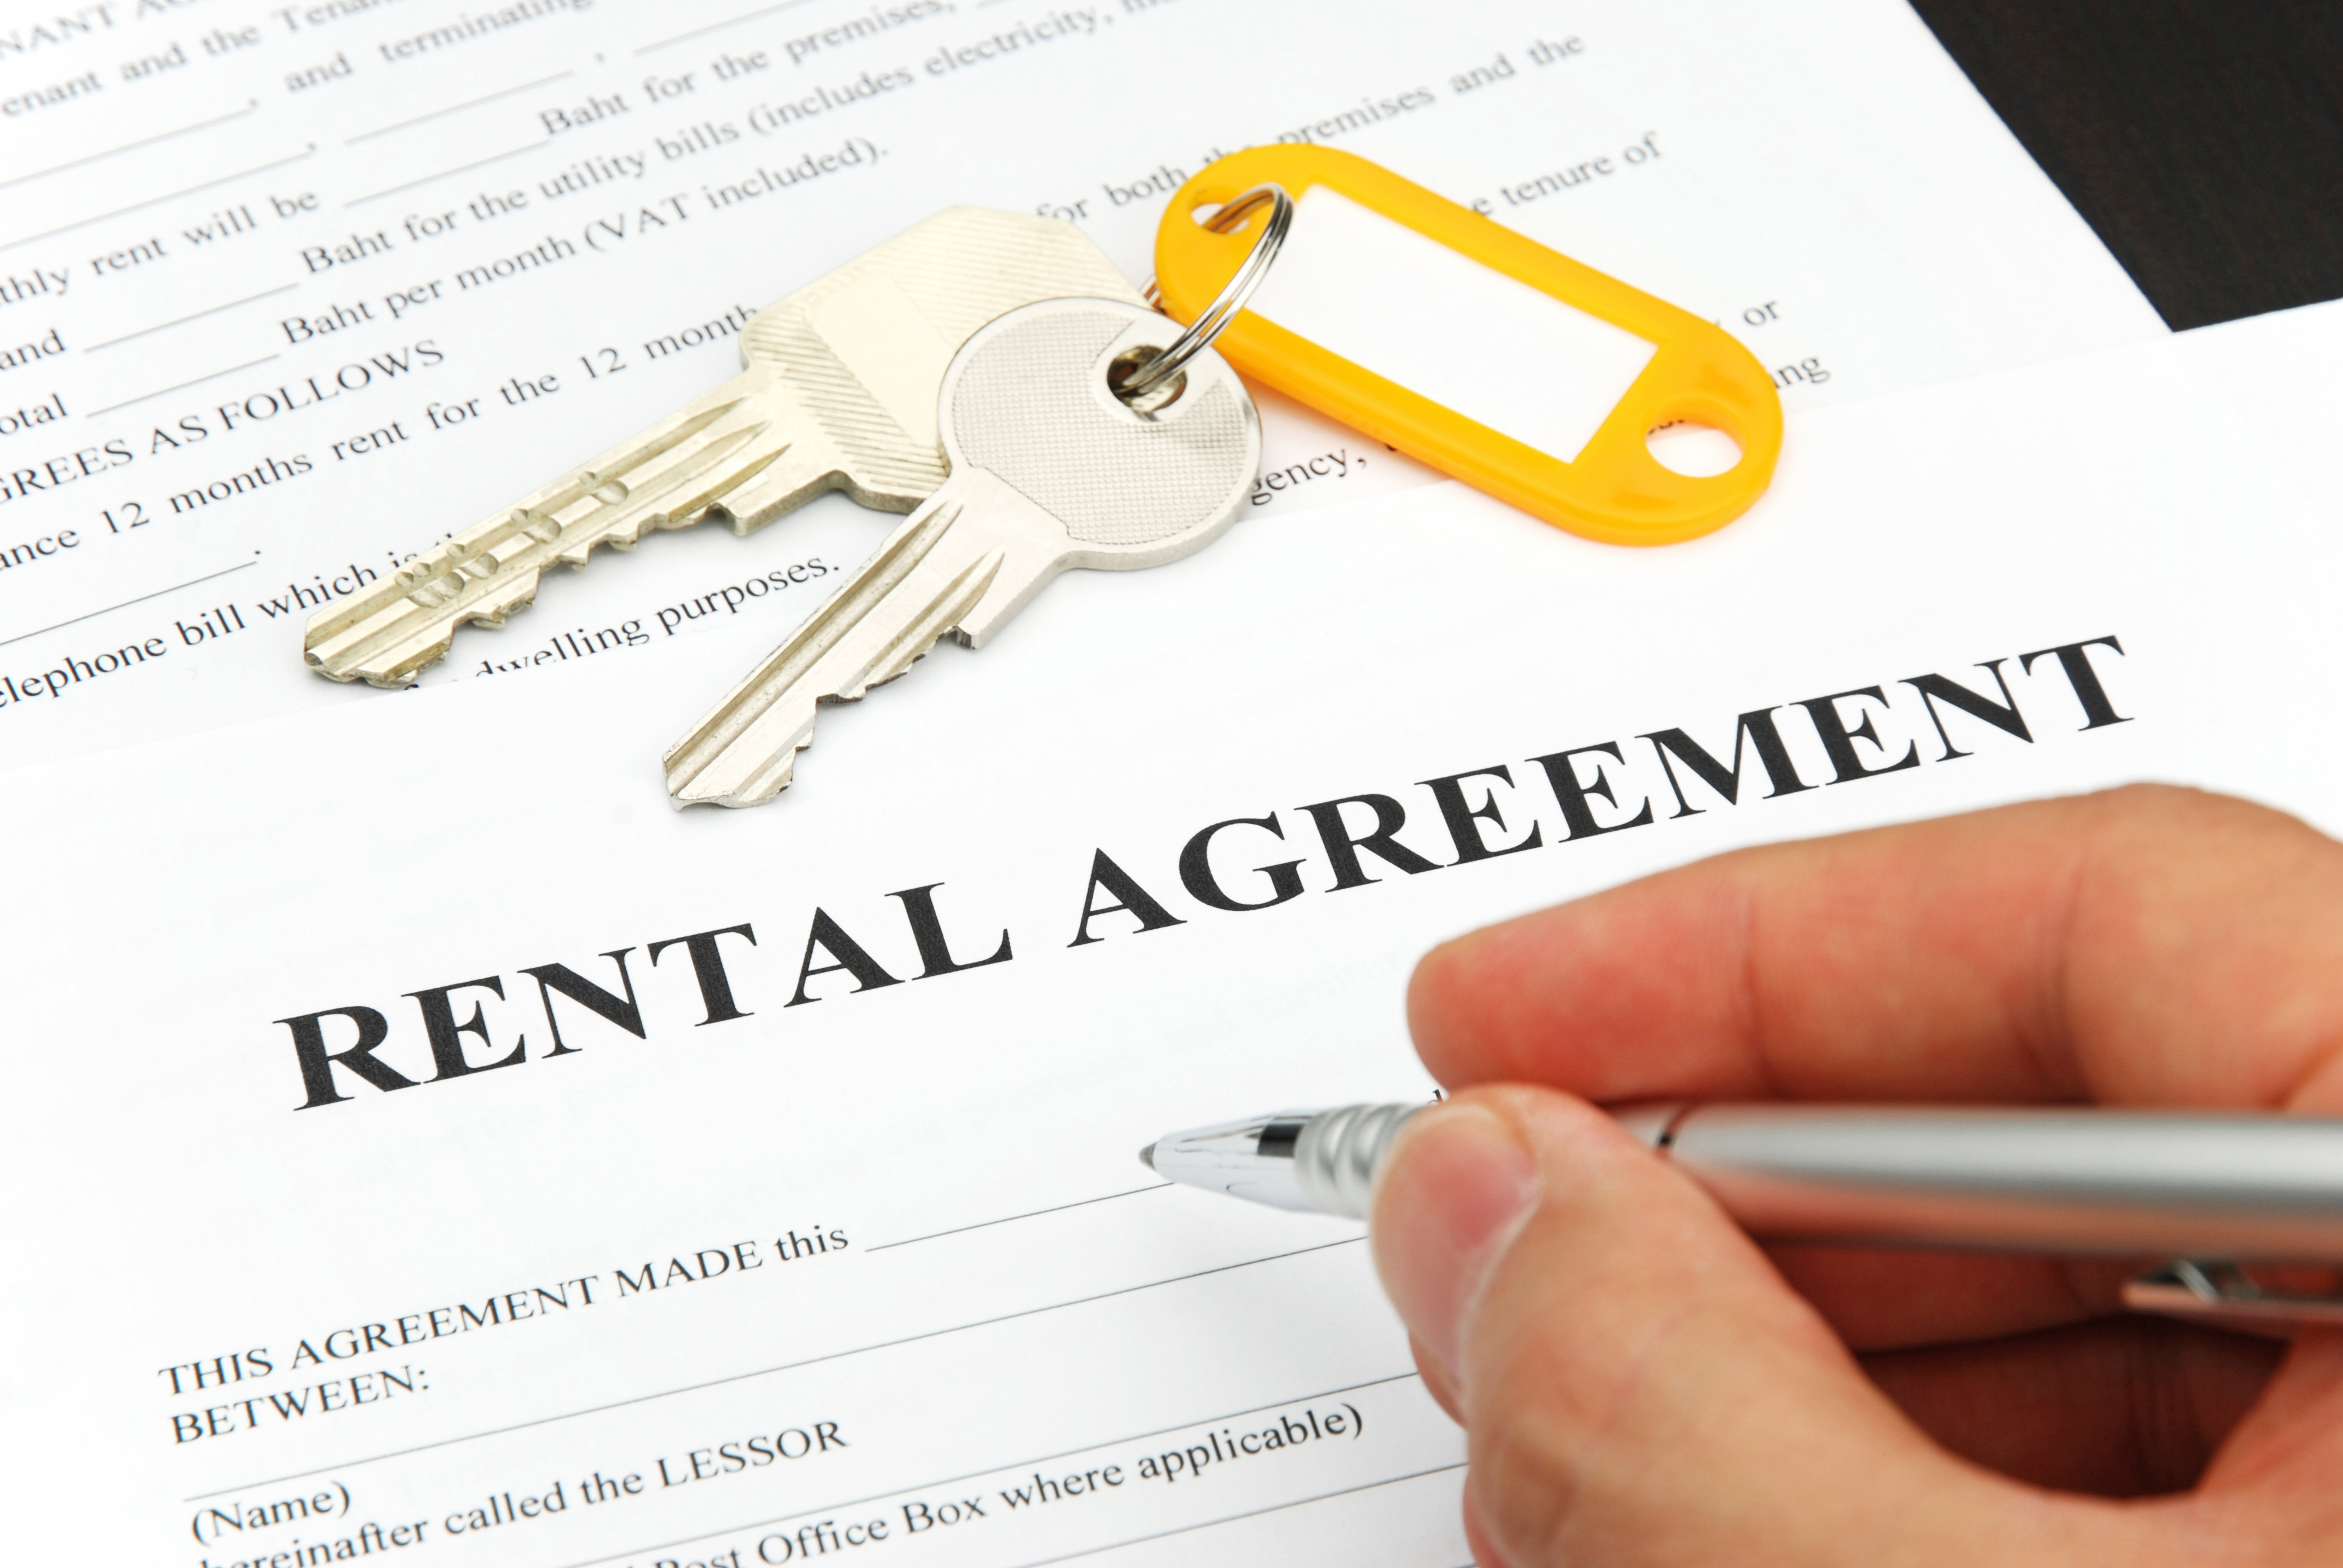 To Sell or Not to Sell? I Have Tenants.